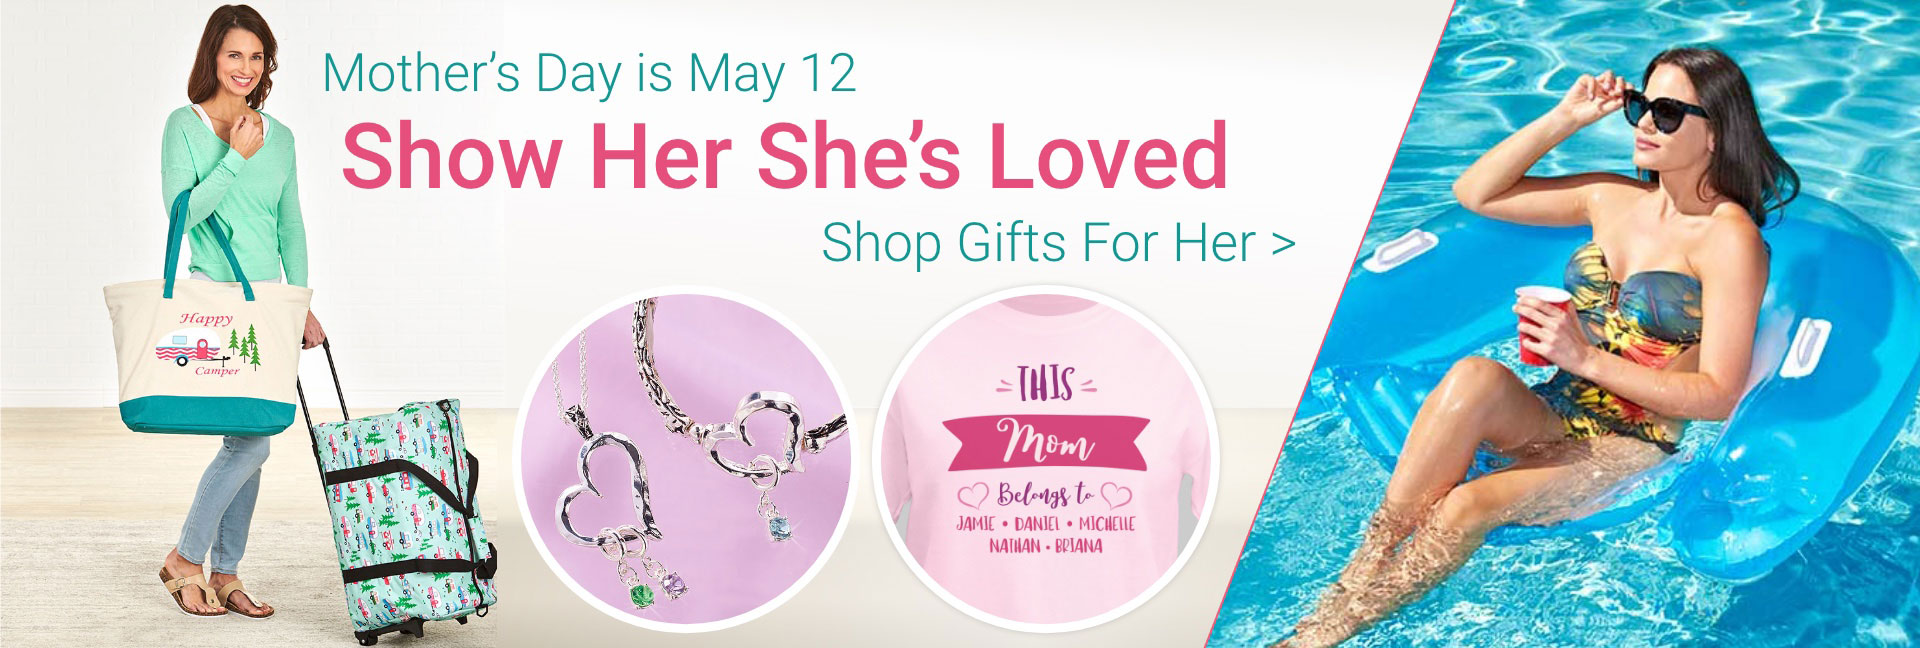 Mother's Day is May 12th. Show Her She's Loved. Shop now.